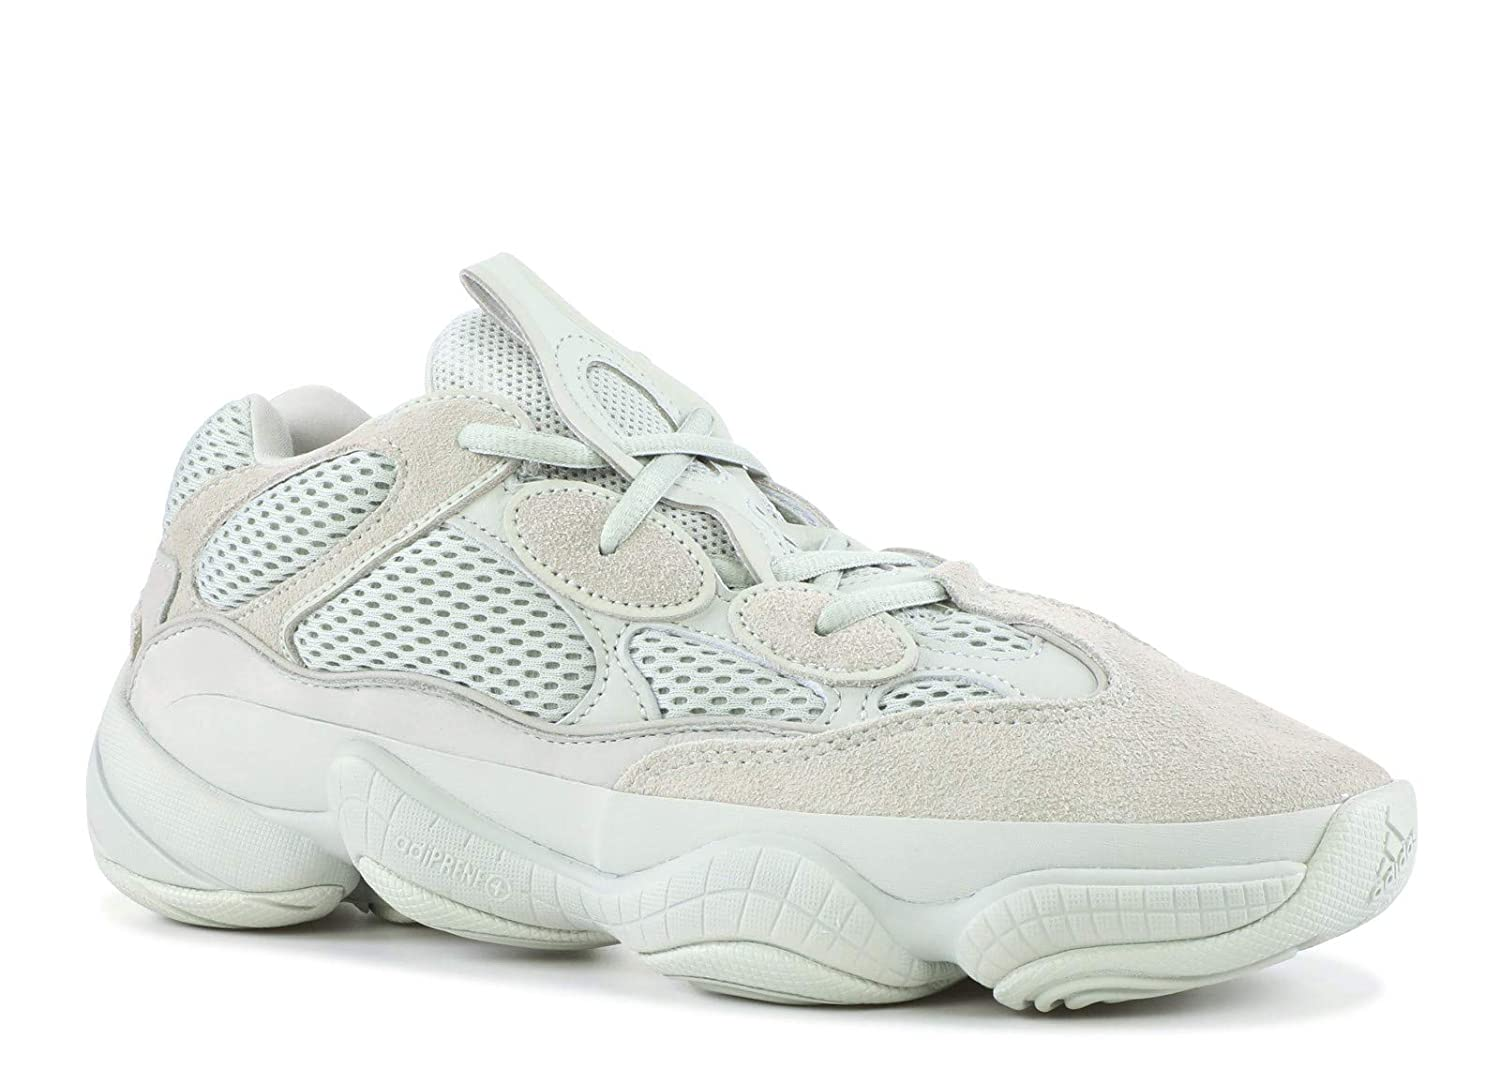 timeless design e0239 c9126 adidas Yeezy 500 - US 8